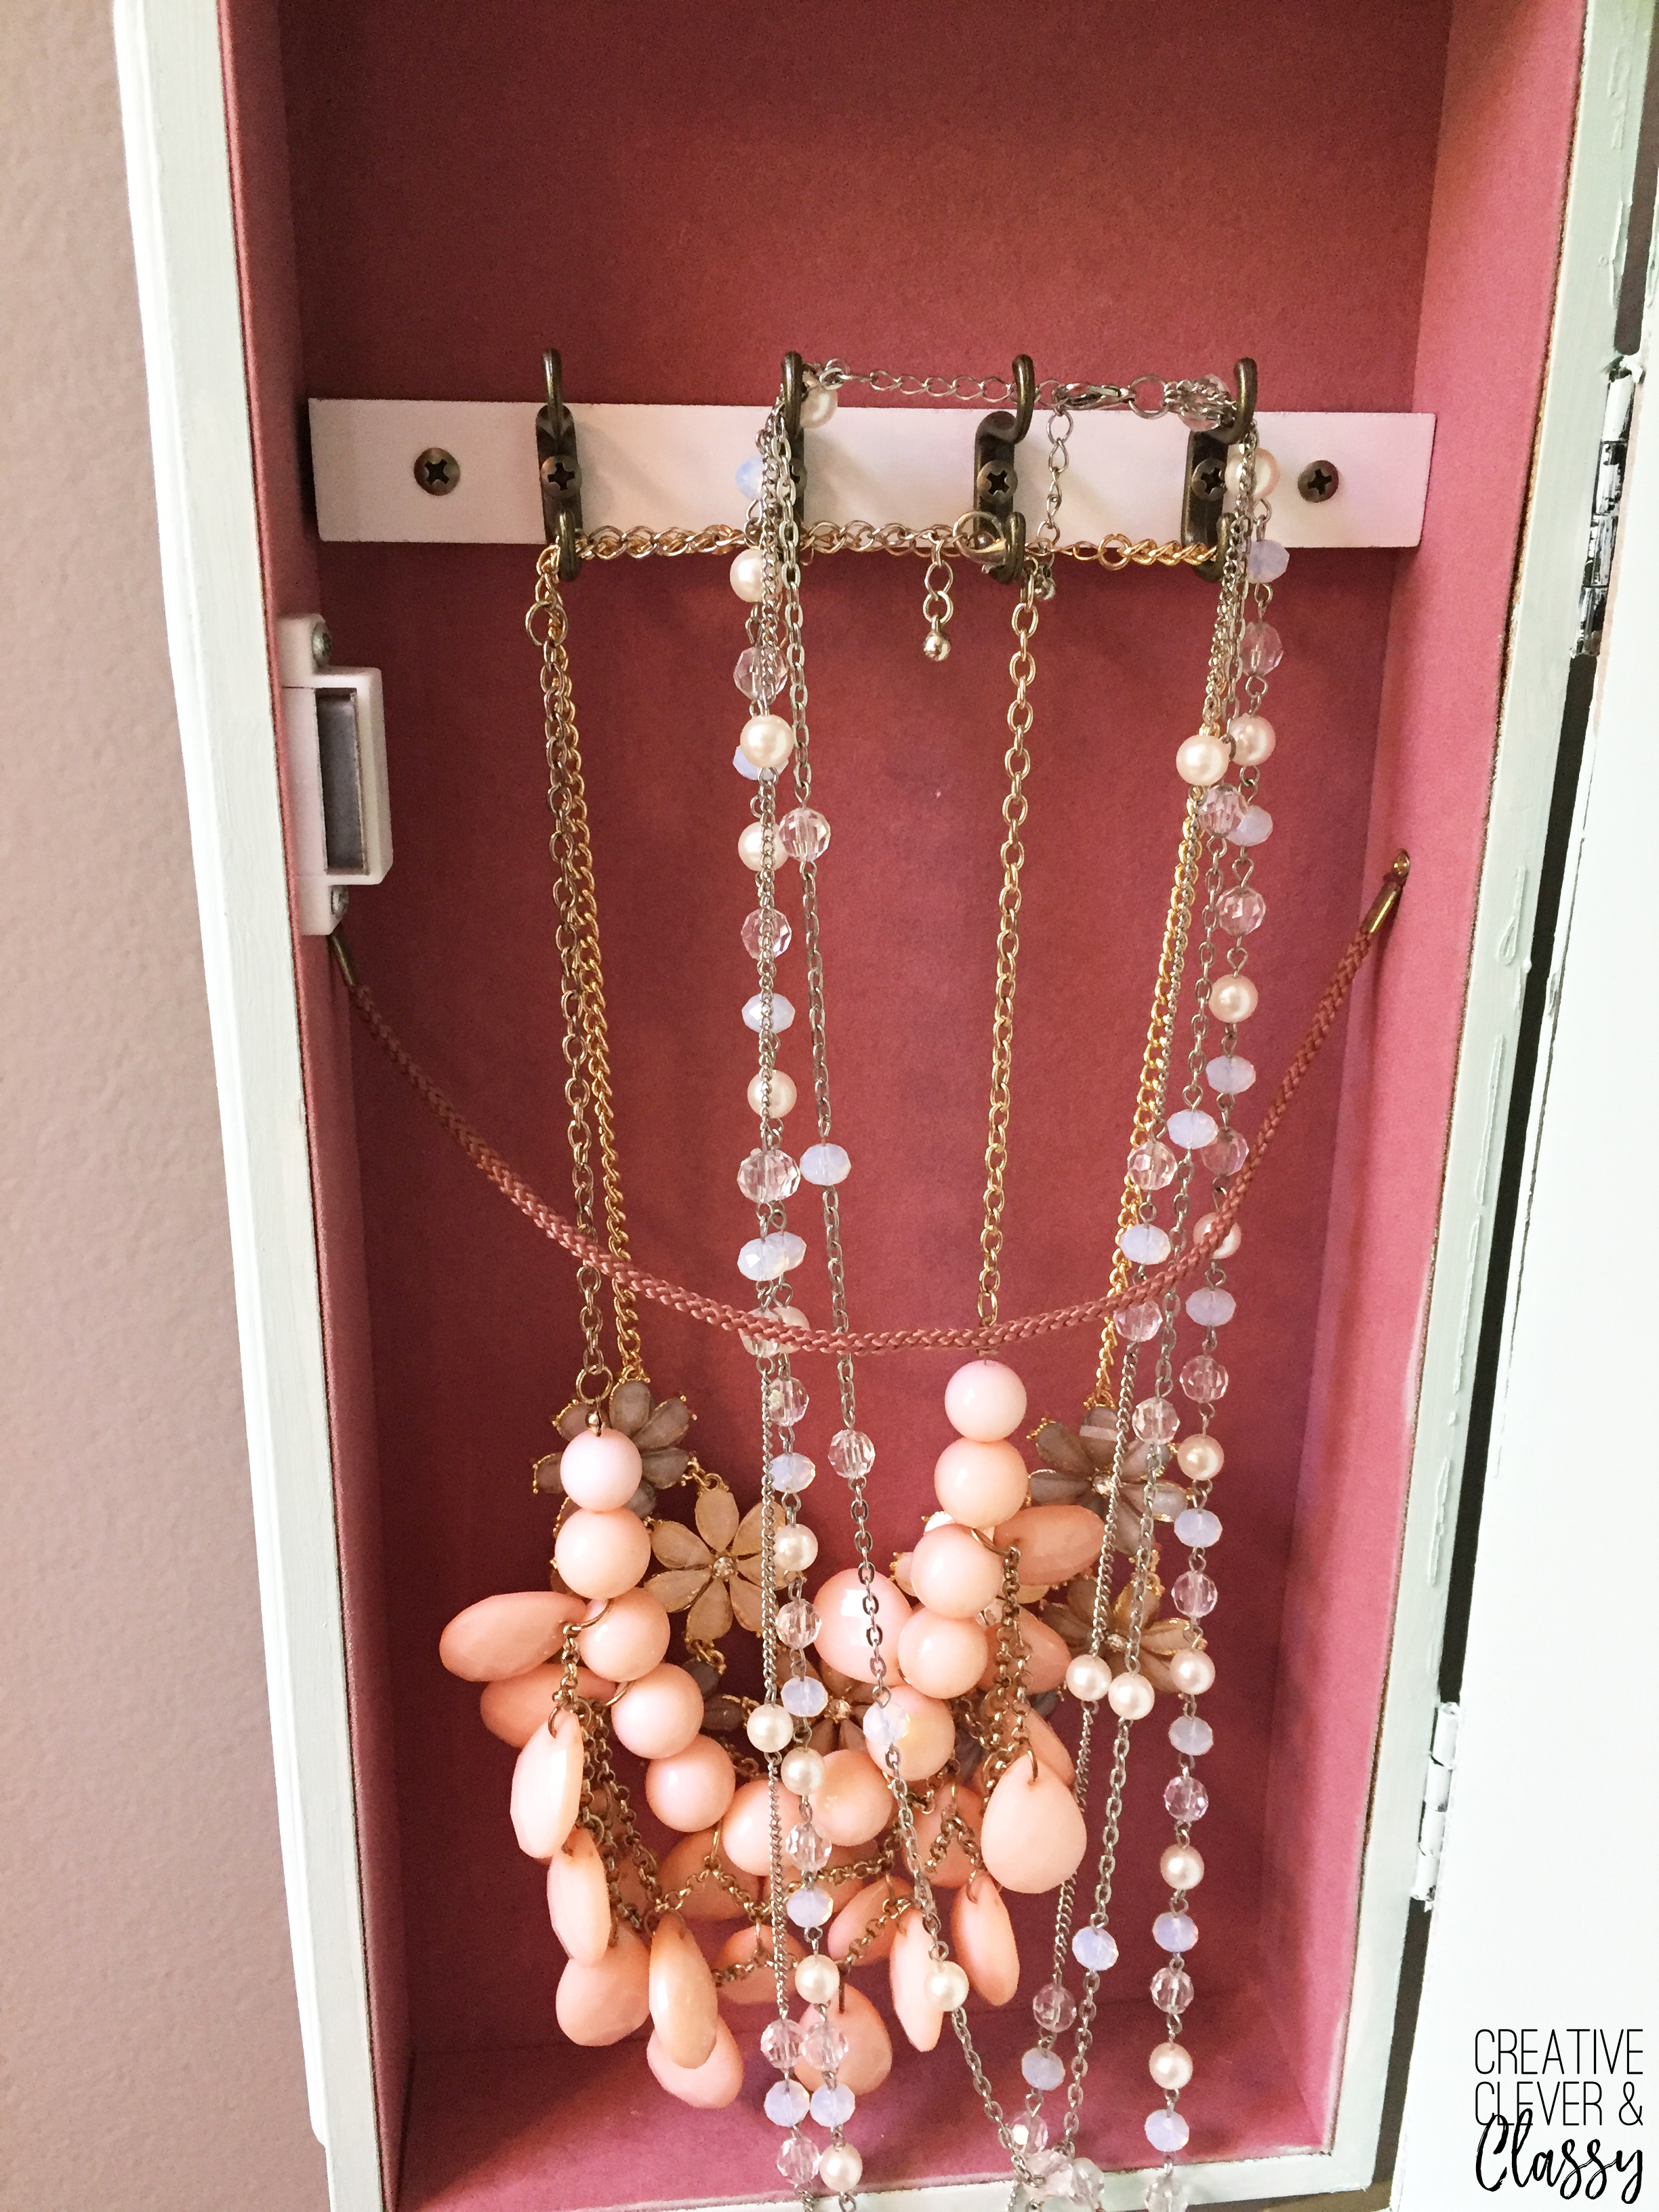 Necklace organization: I found a white jewelry armoire at a garage sale, and decided to give it a paint job. Here is a simple tutorial on how to paint furniture!